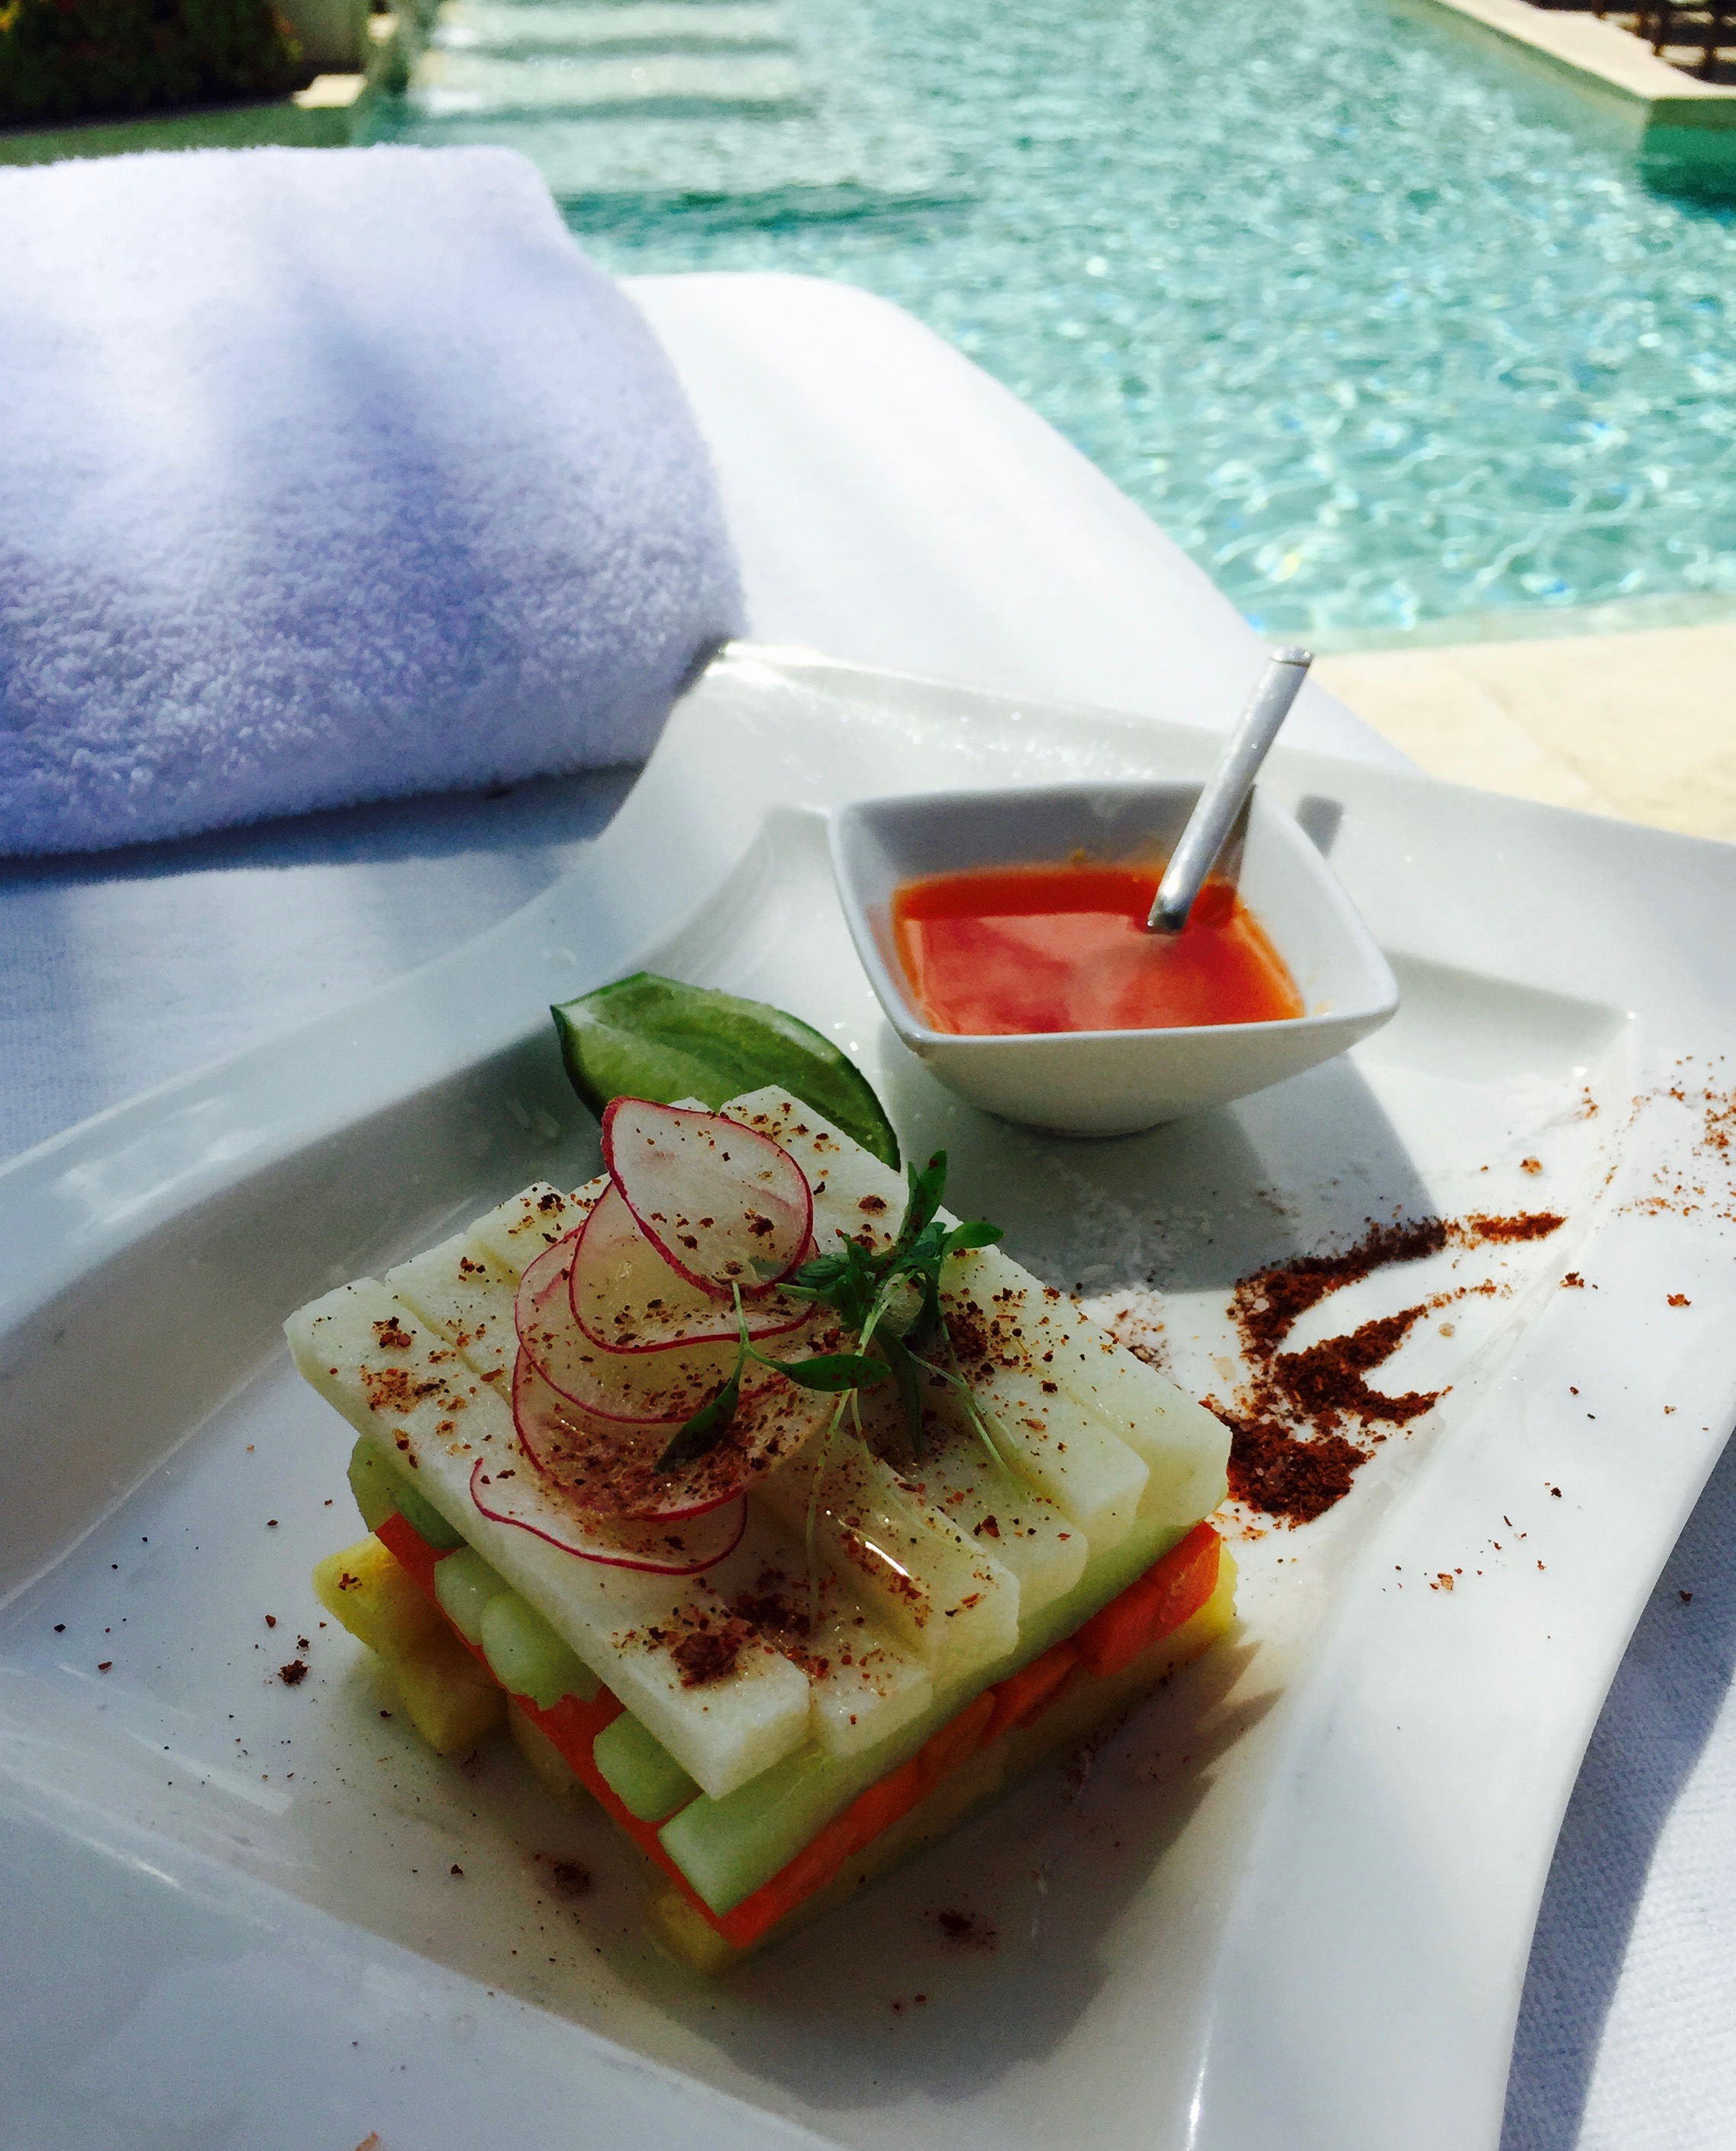 Another clever presentation of Jicama, cucumbers, carrots, mango, radishes and chili flakes. I so looked forward to my lunch each day.